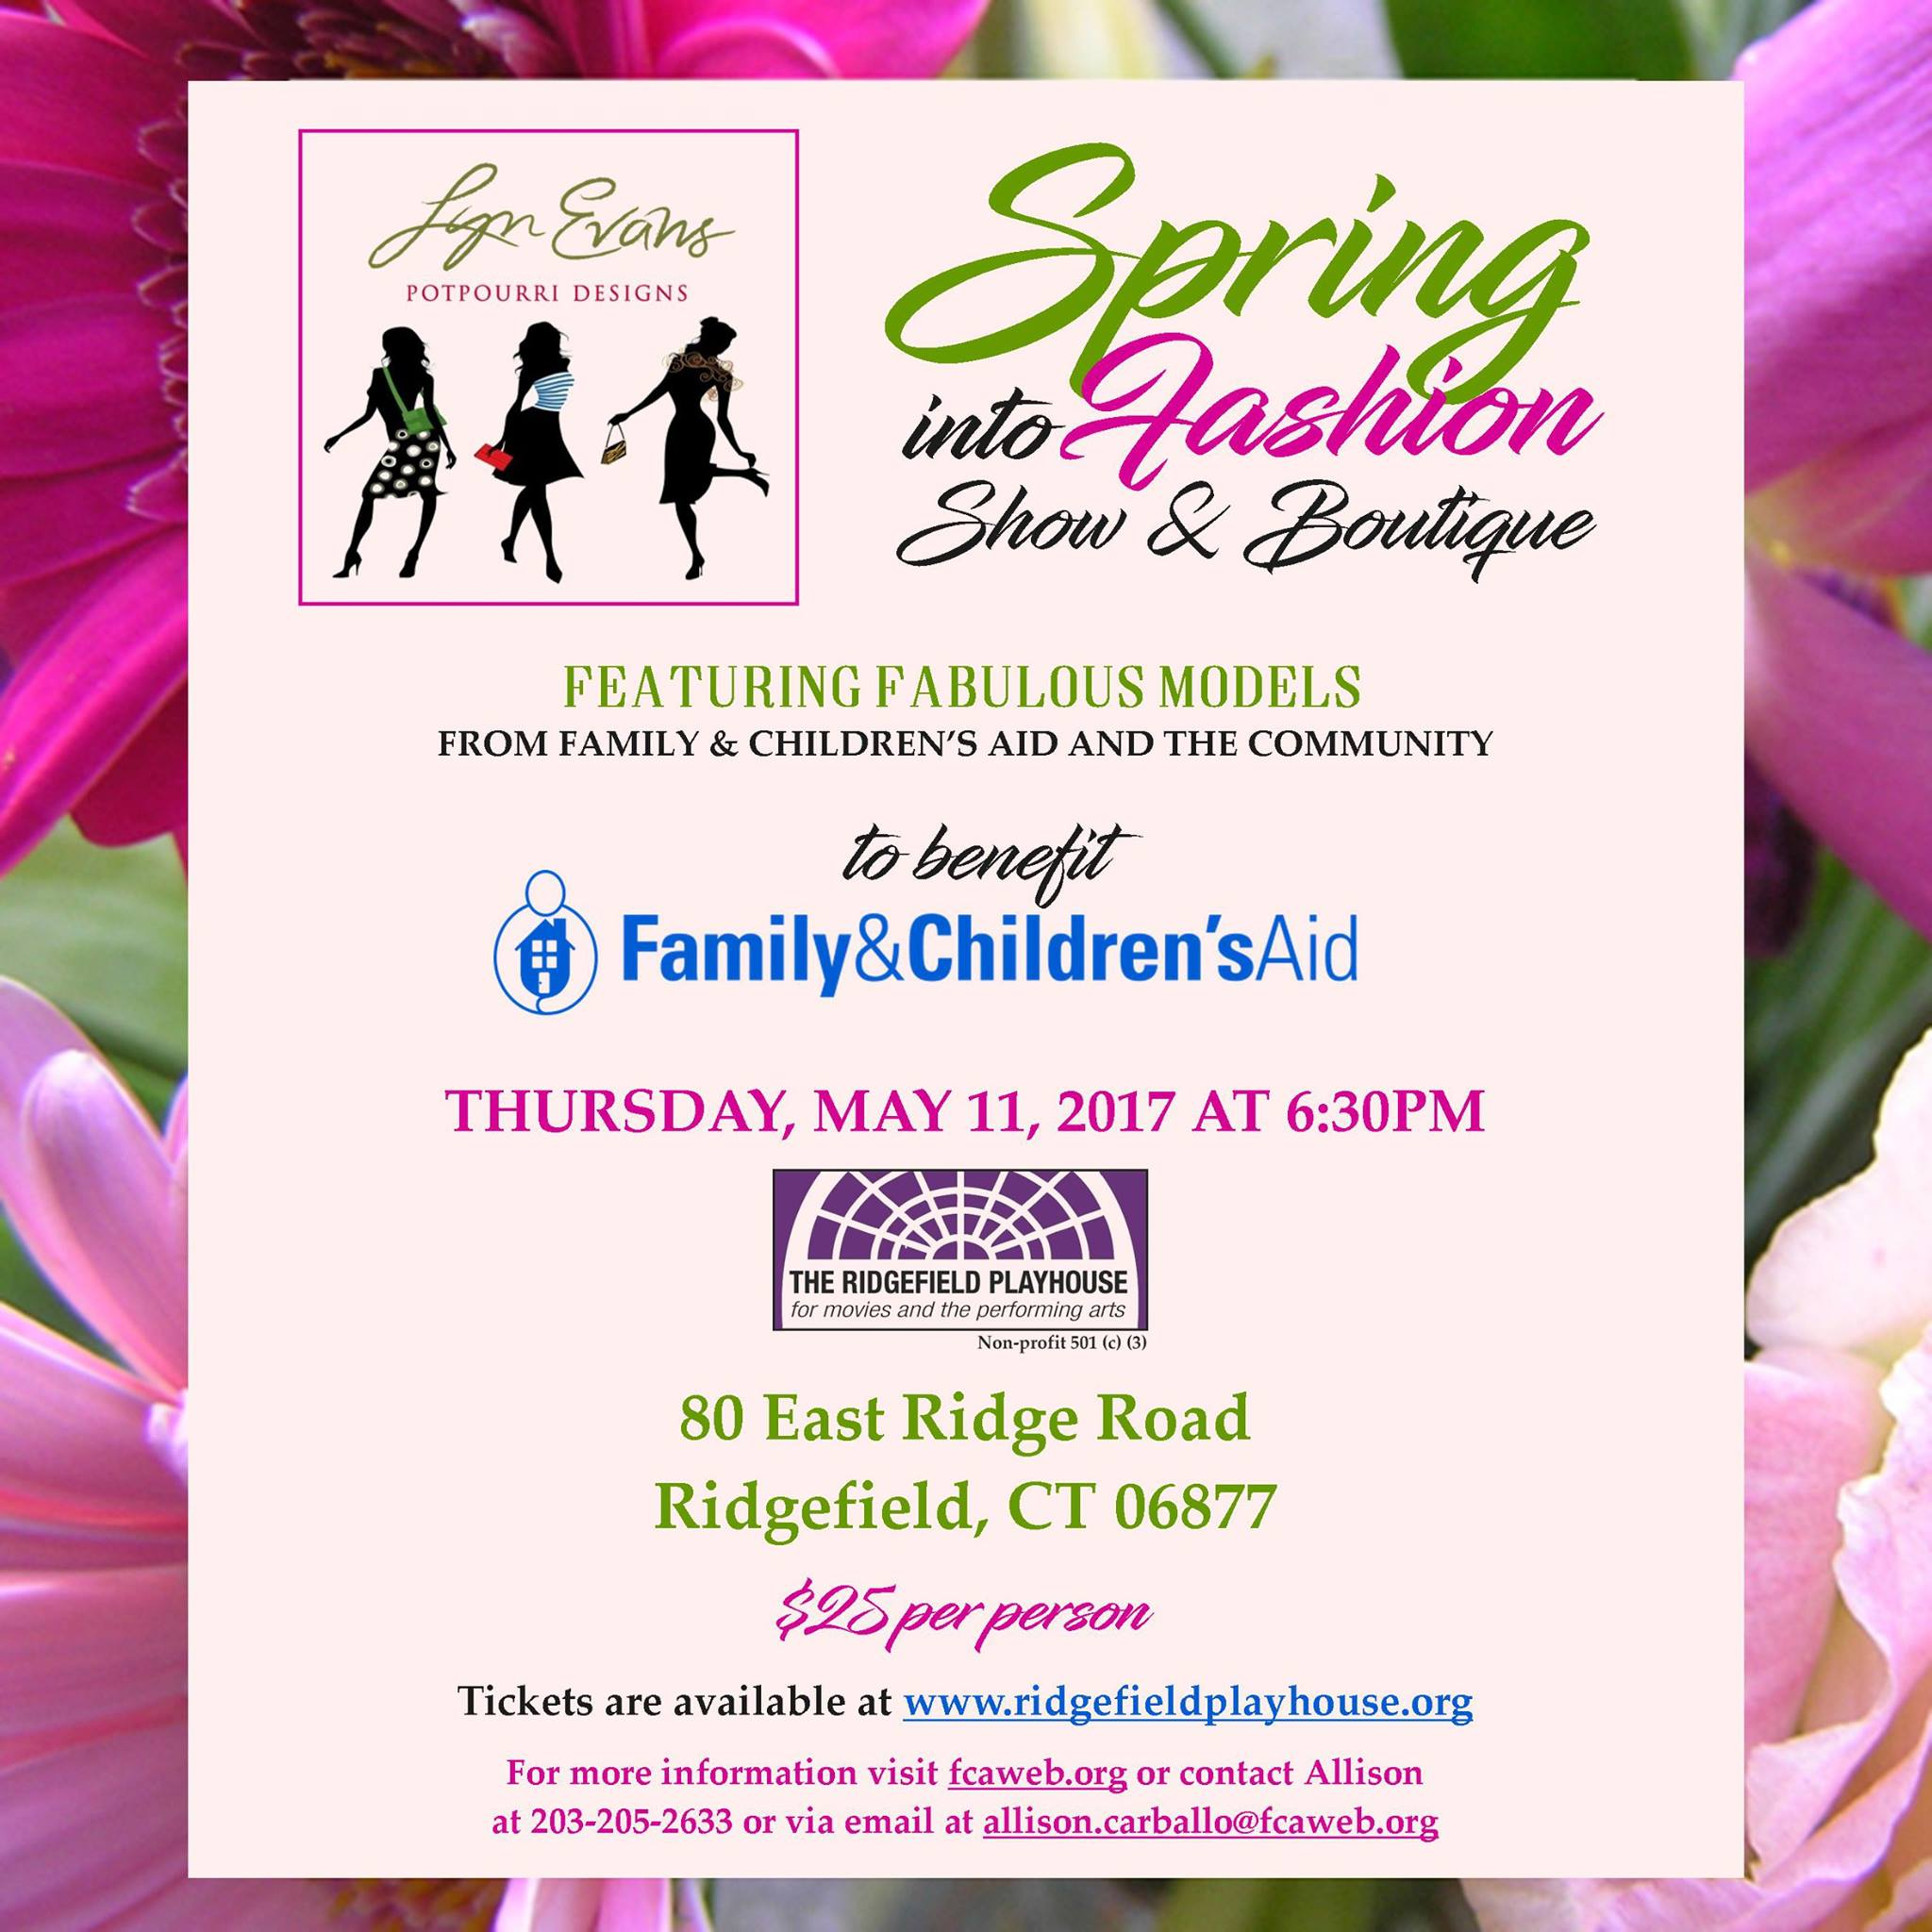 Spring into Fashion Show & Boutique